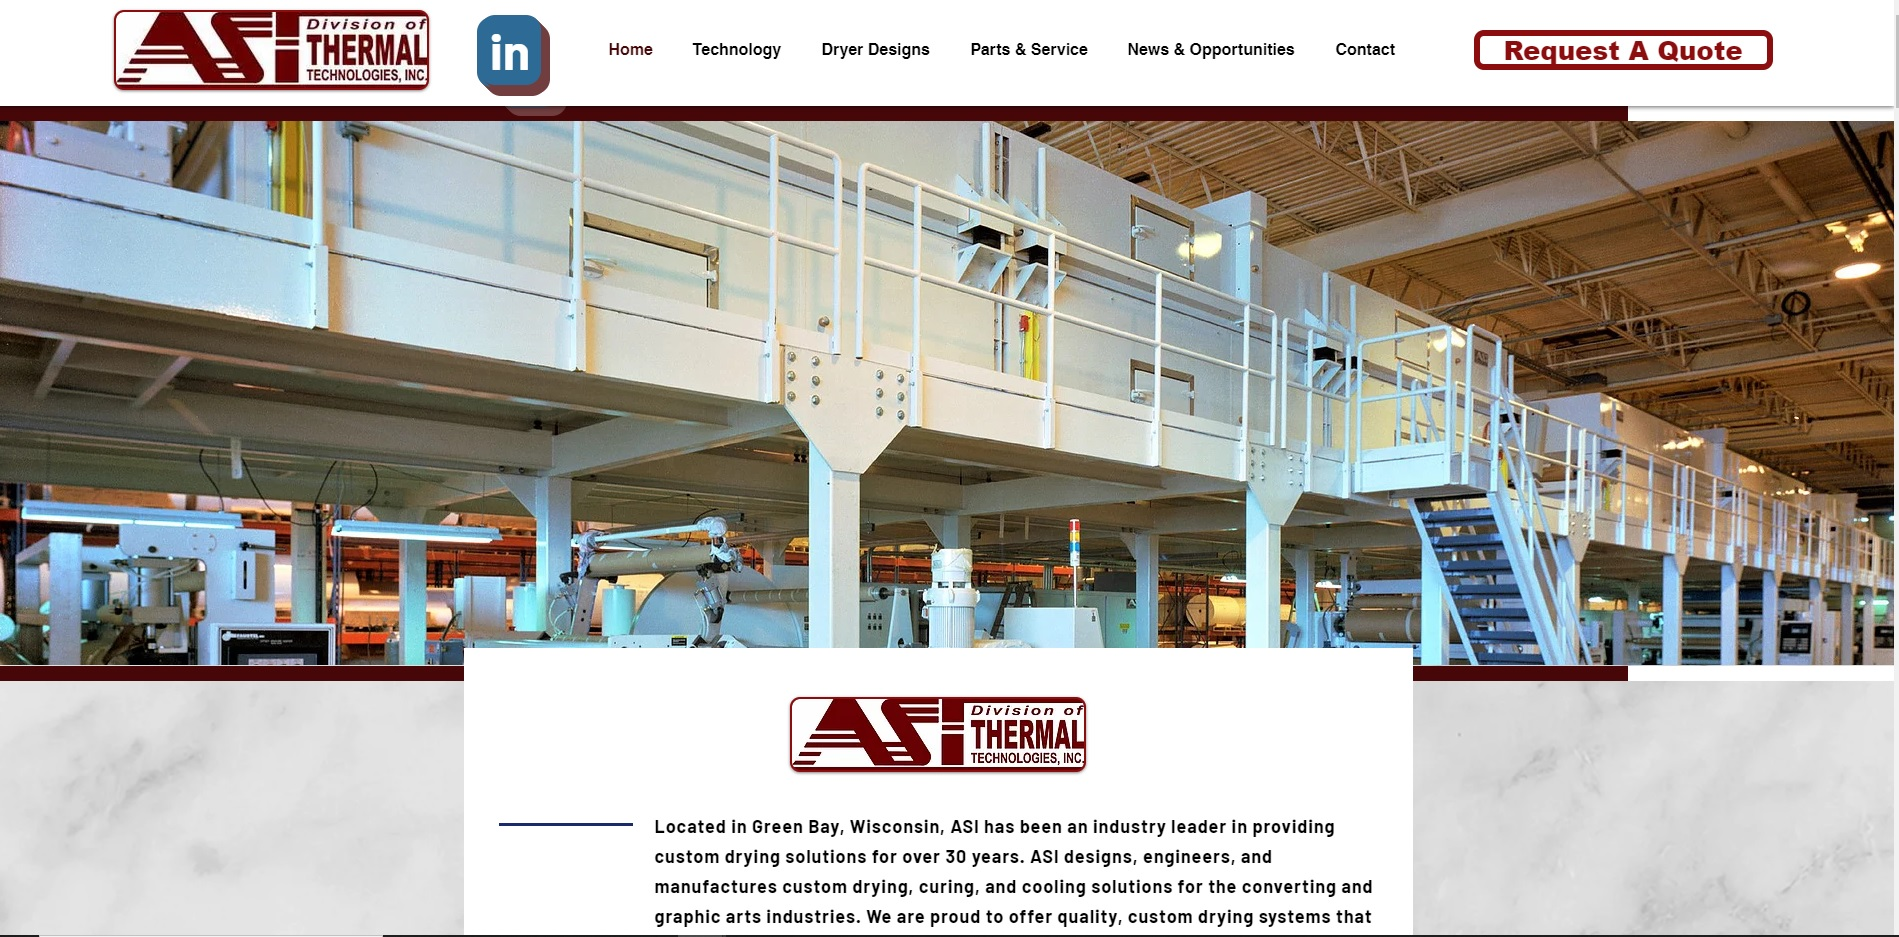 ASI, Division of Thermal Technologies